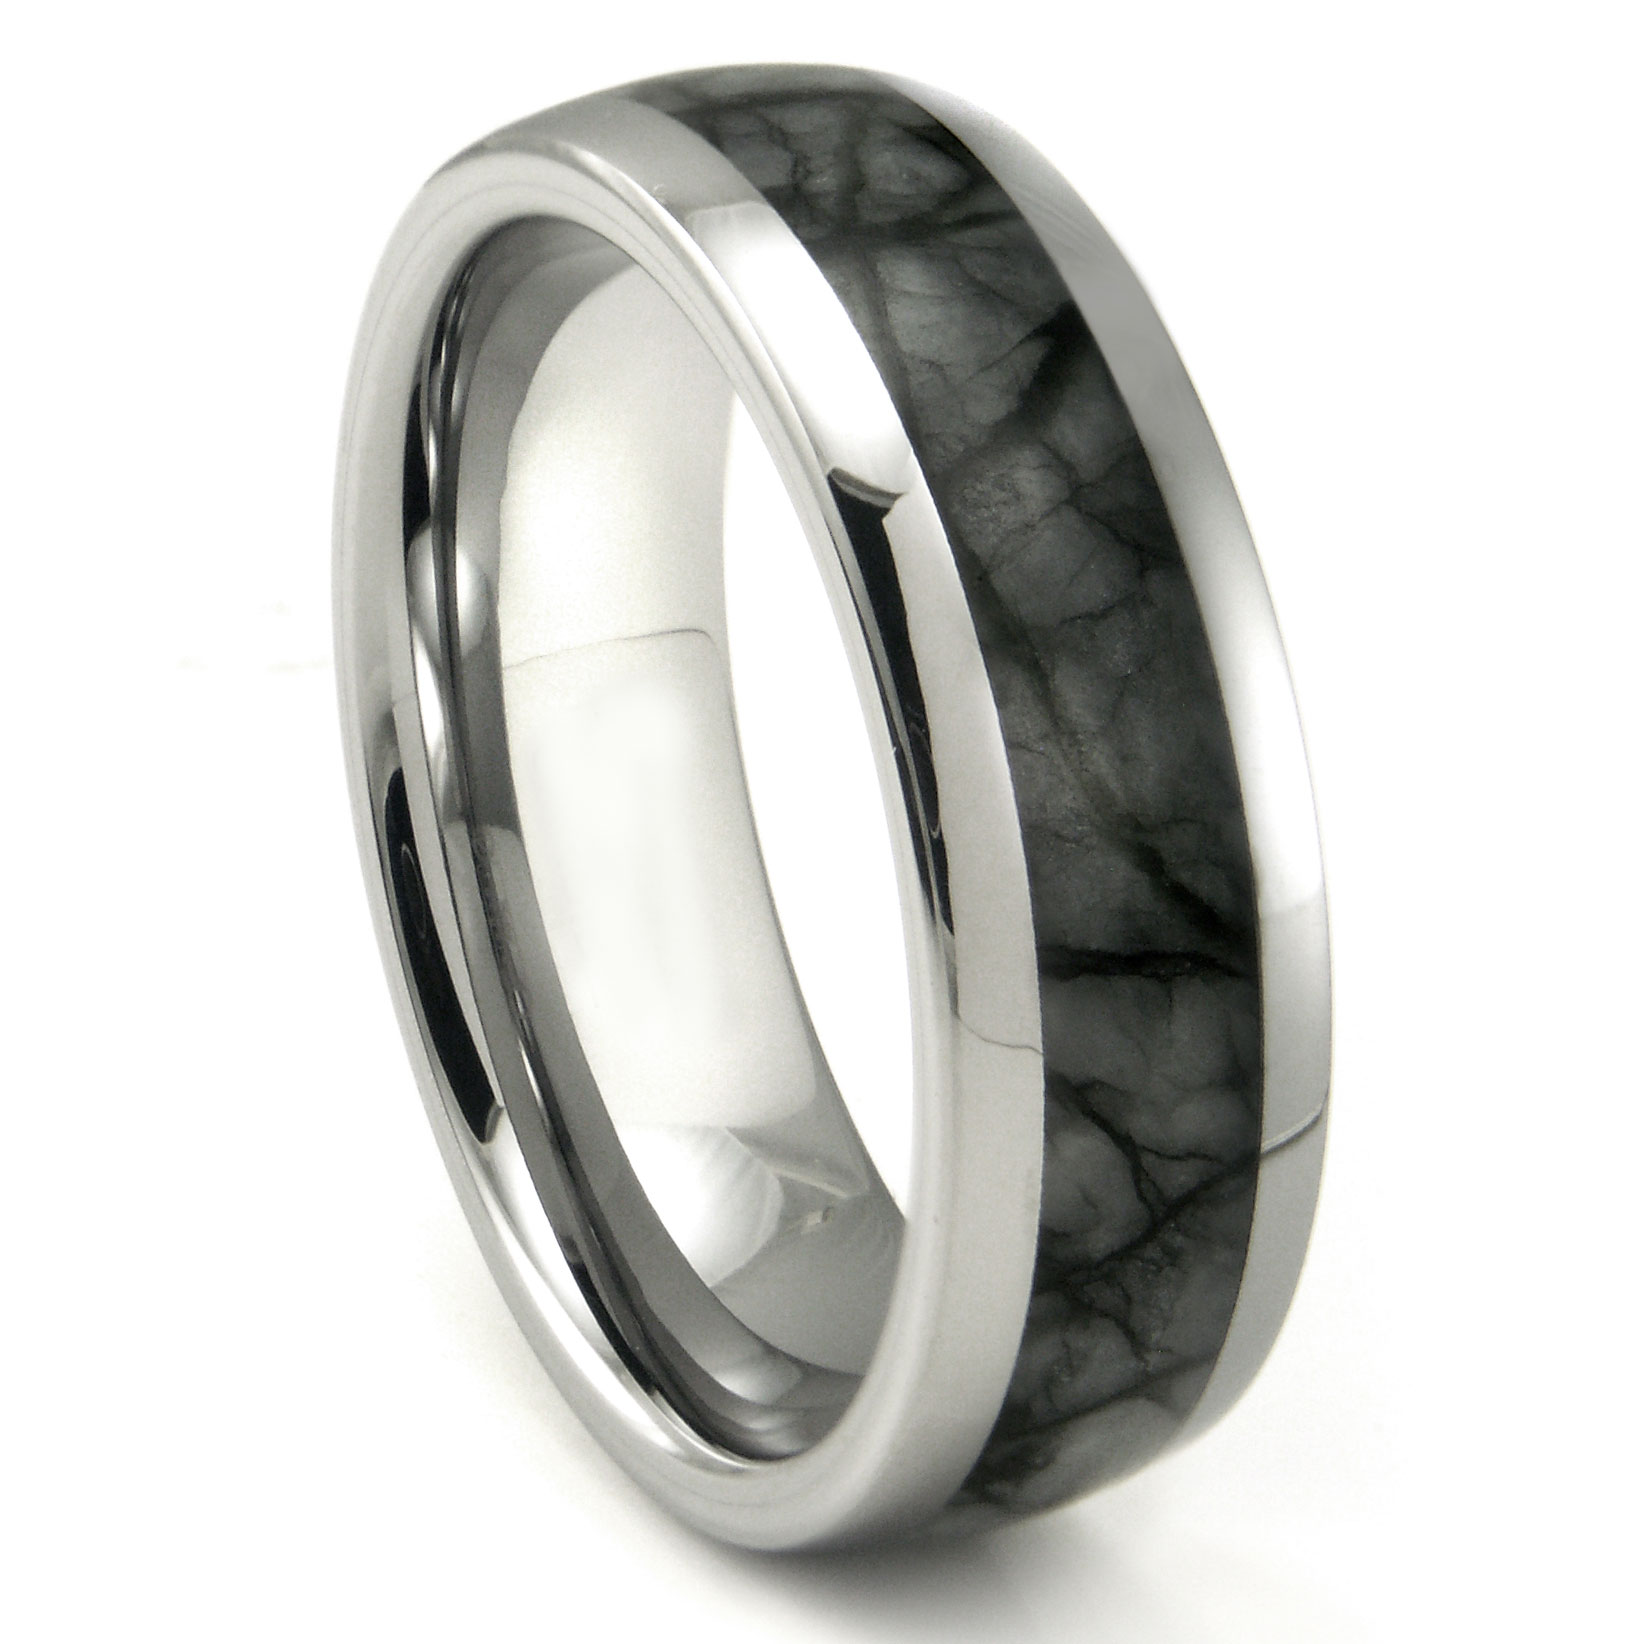 rose bands b band rings mens inside carbide fit com ring gold will wedding duo comfort dome king brown amazon tungsten